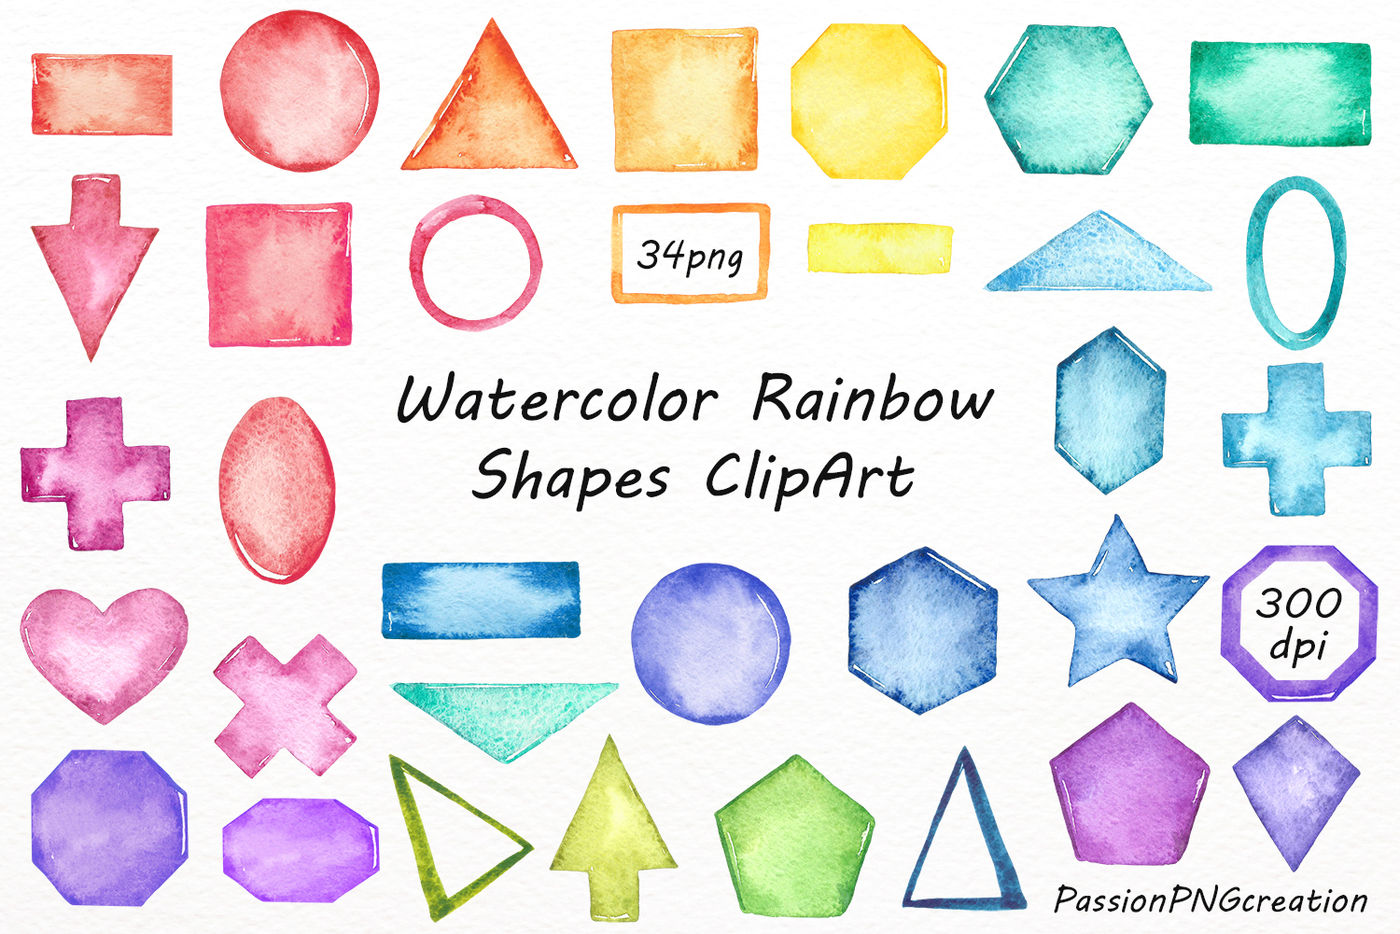 Watercolor Rainbow Shapes Clipart By Passionpngcreation